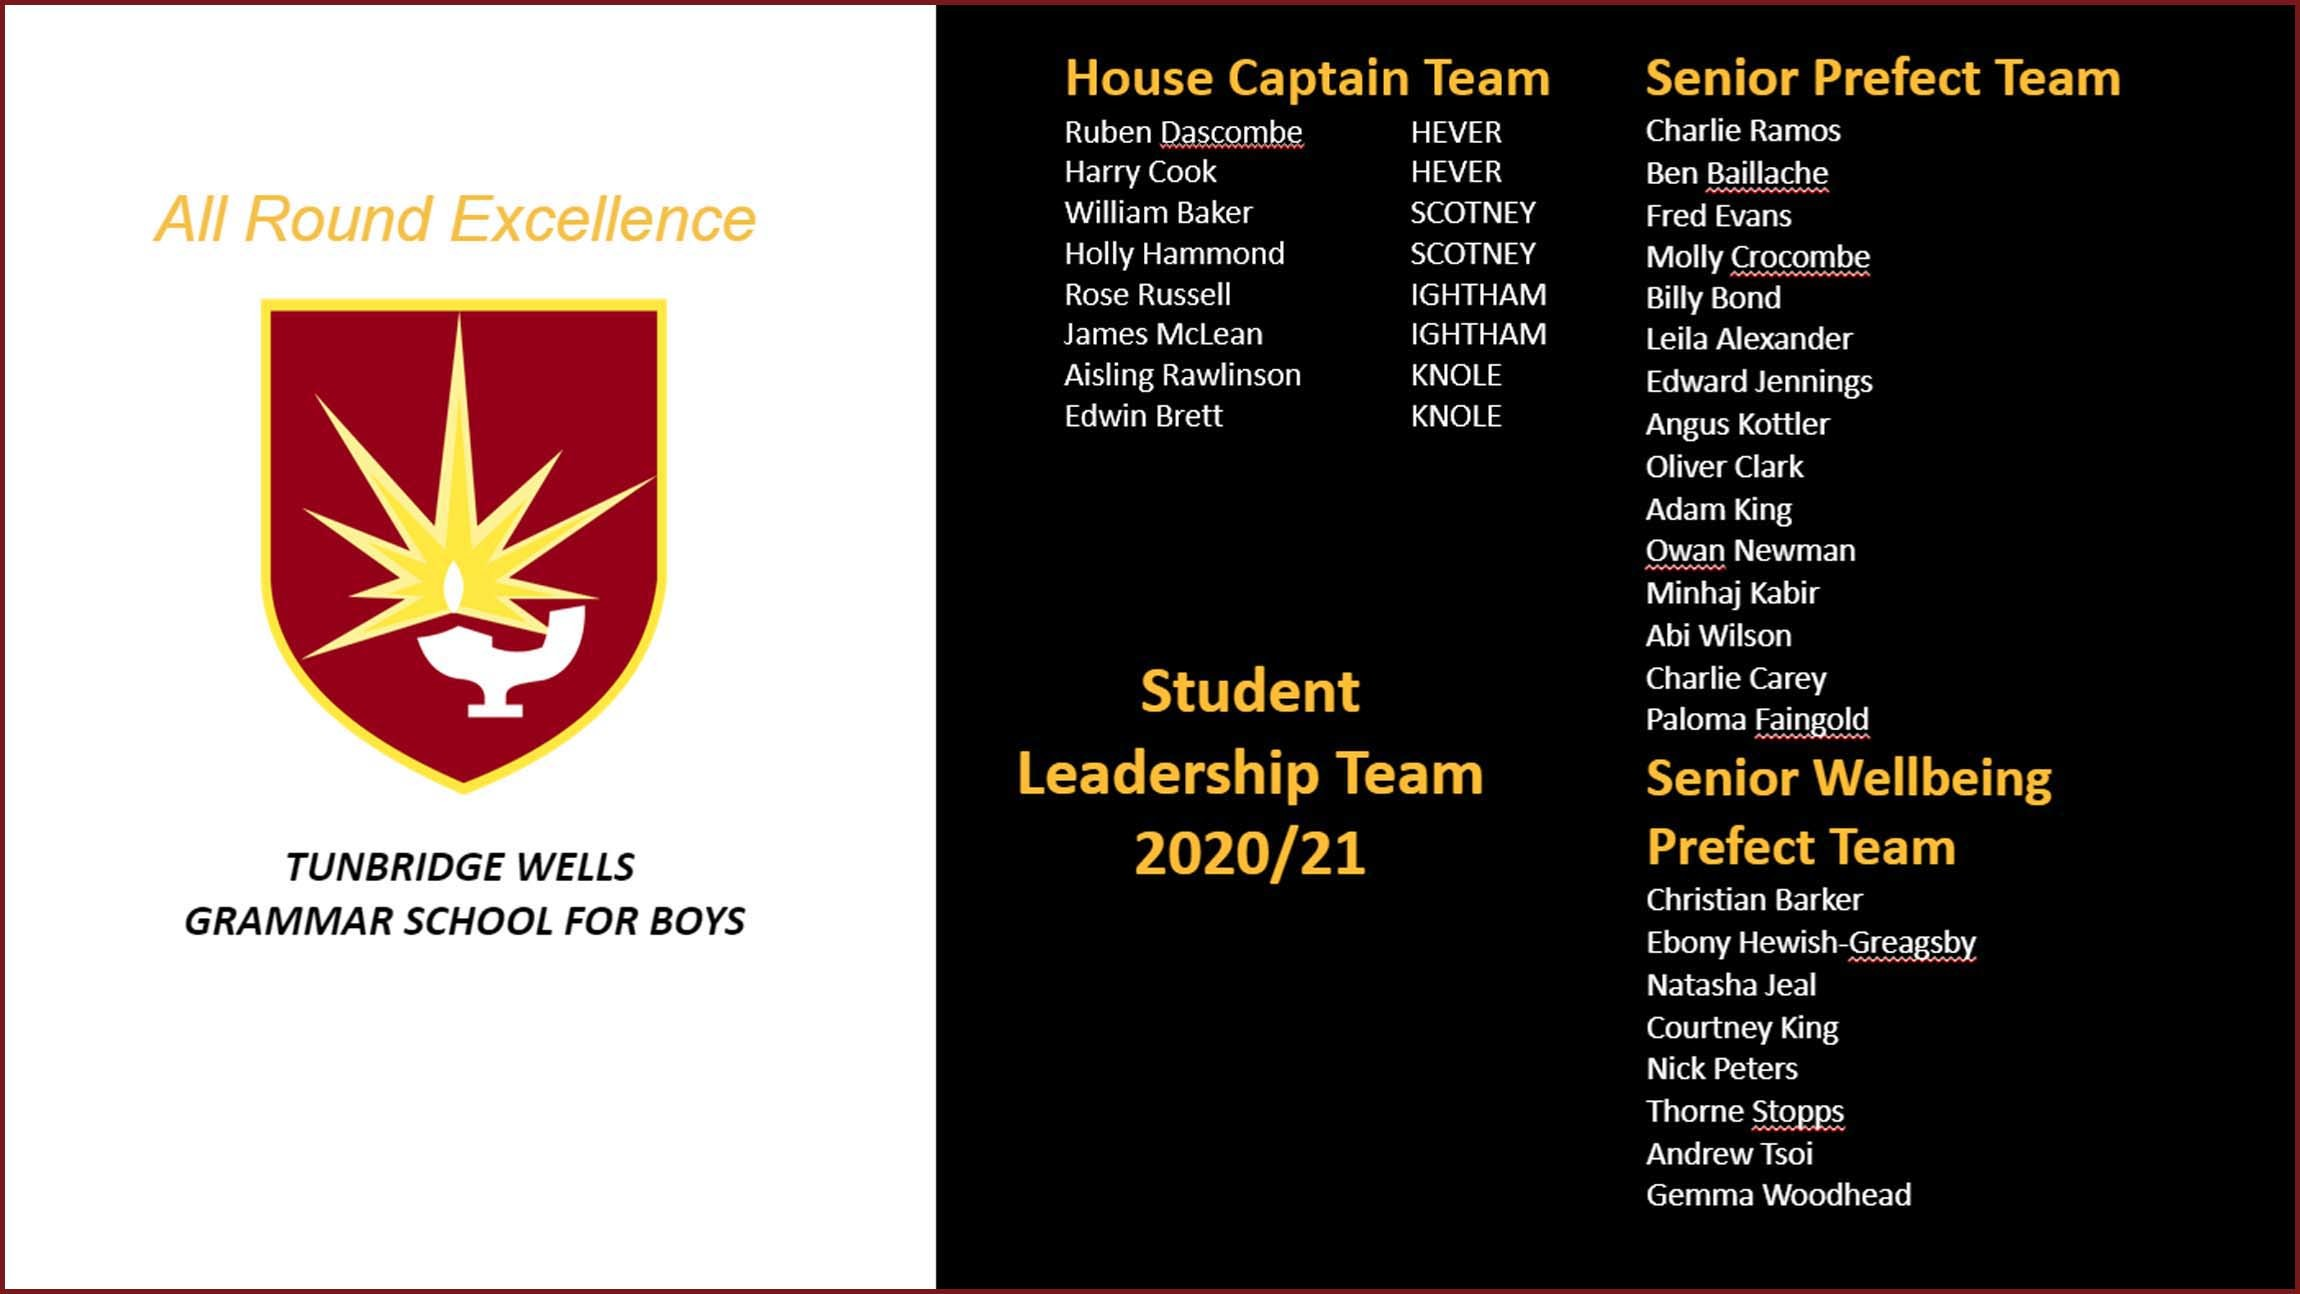 Student leadership team list